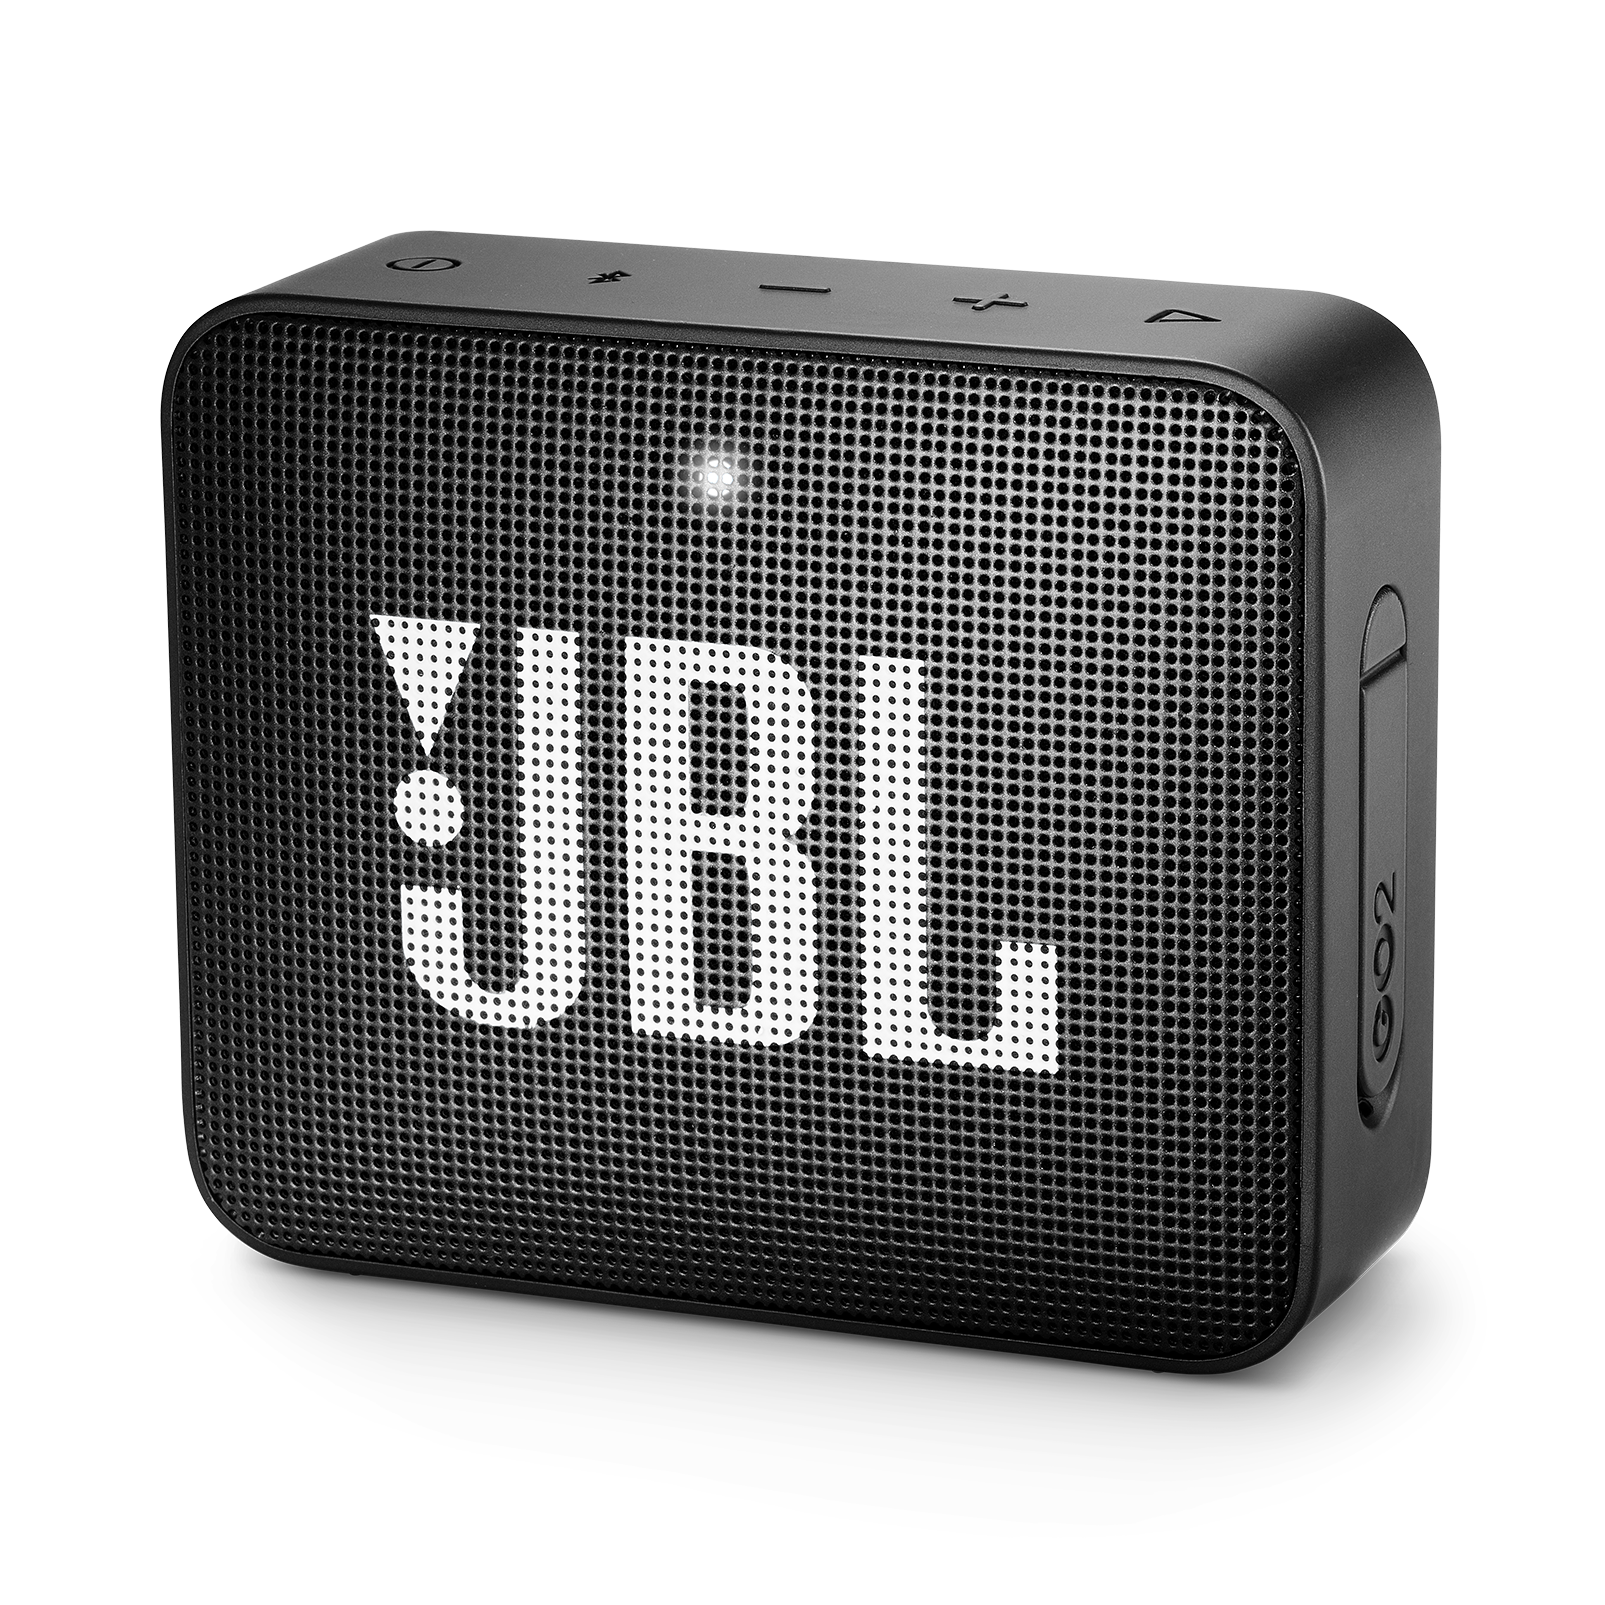 jbl go 2 mini enceinte portable bluetooth. Black Bedroom Furniture Sets. Home Design Ideas